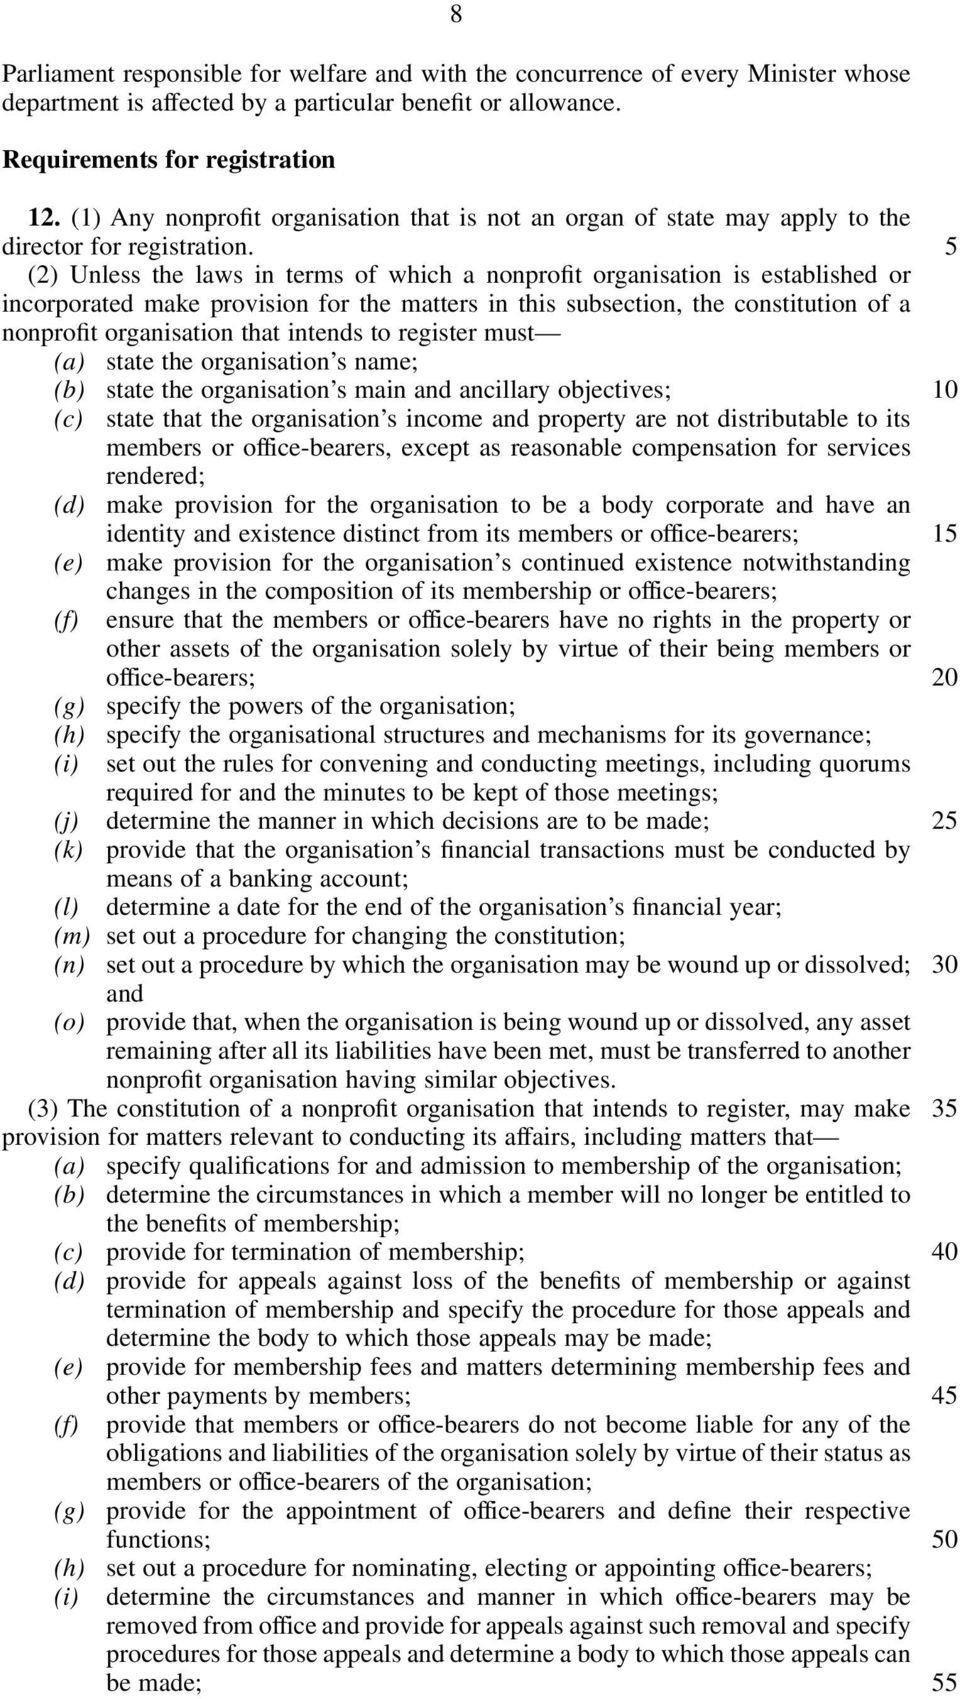 (2) Unless the laws in terms of which a nonprofit organisation is established or incorporated make provision for the matters in this subsection, the constitution of a nonprofit organisation that